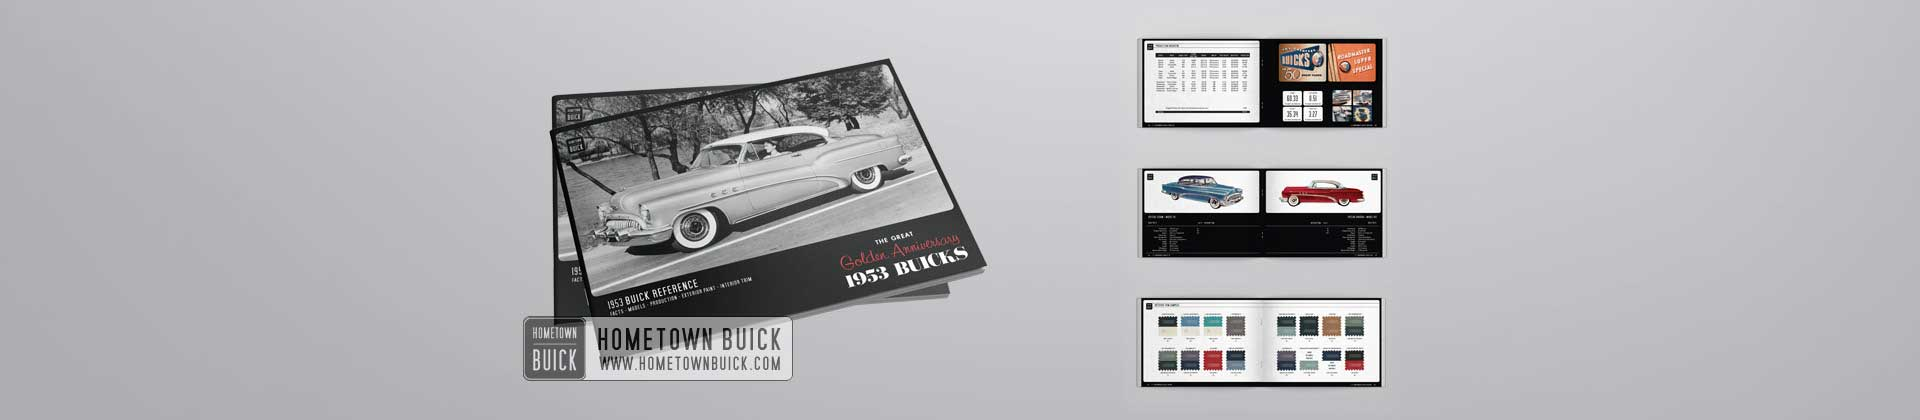 1953 Buick Reference Book